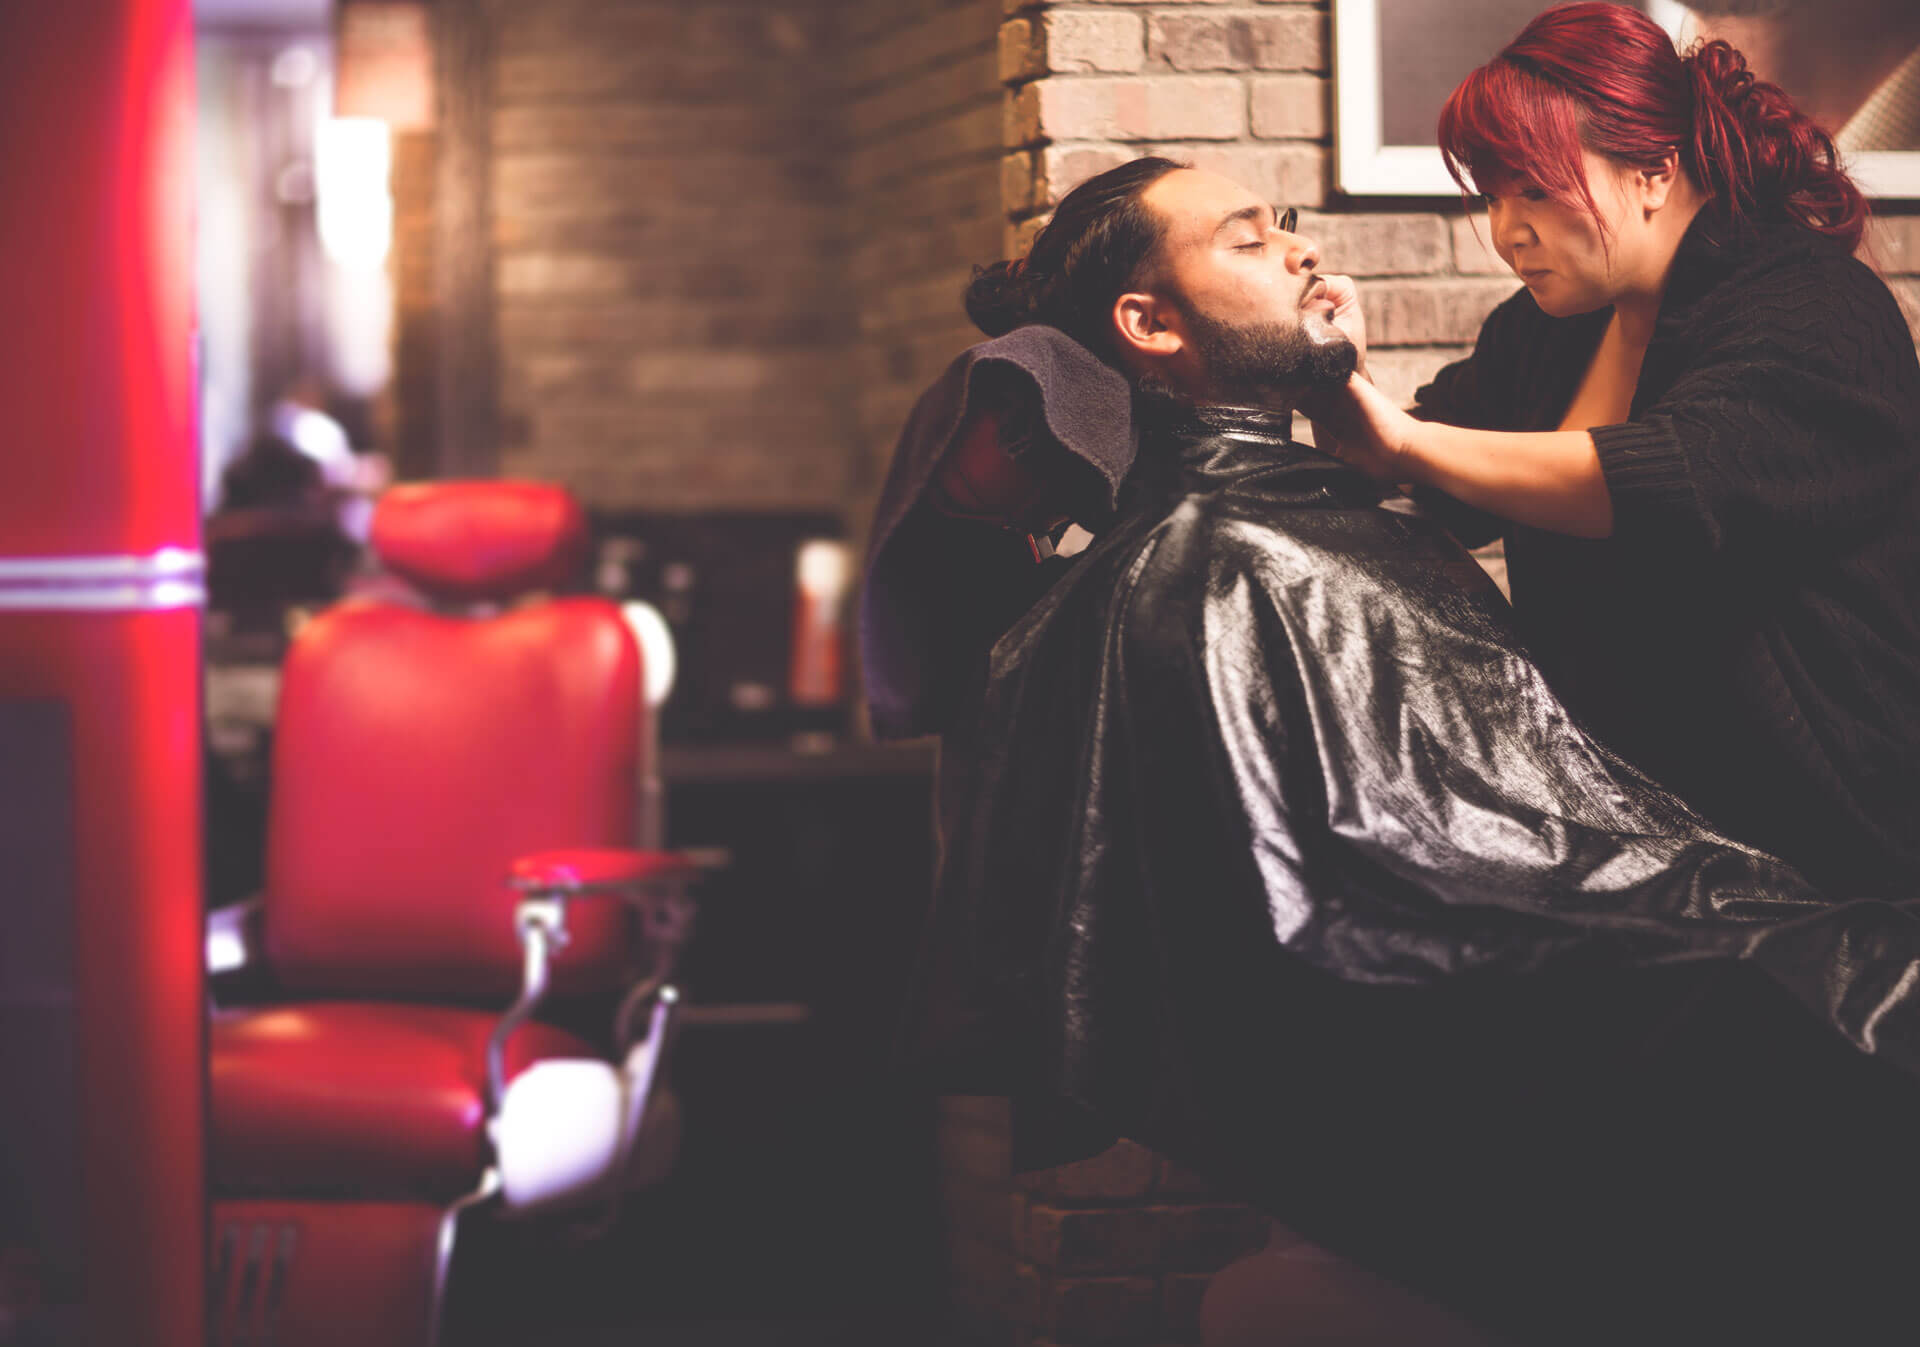 Get a hot shave at Tommy Gun's Original Barber Shop at The CORE Shopping Centre.